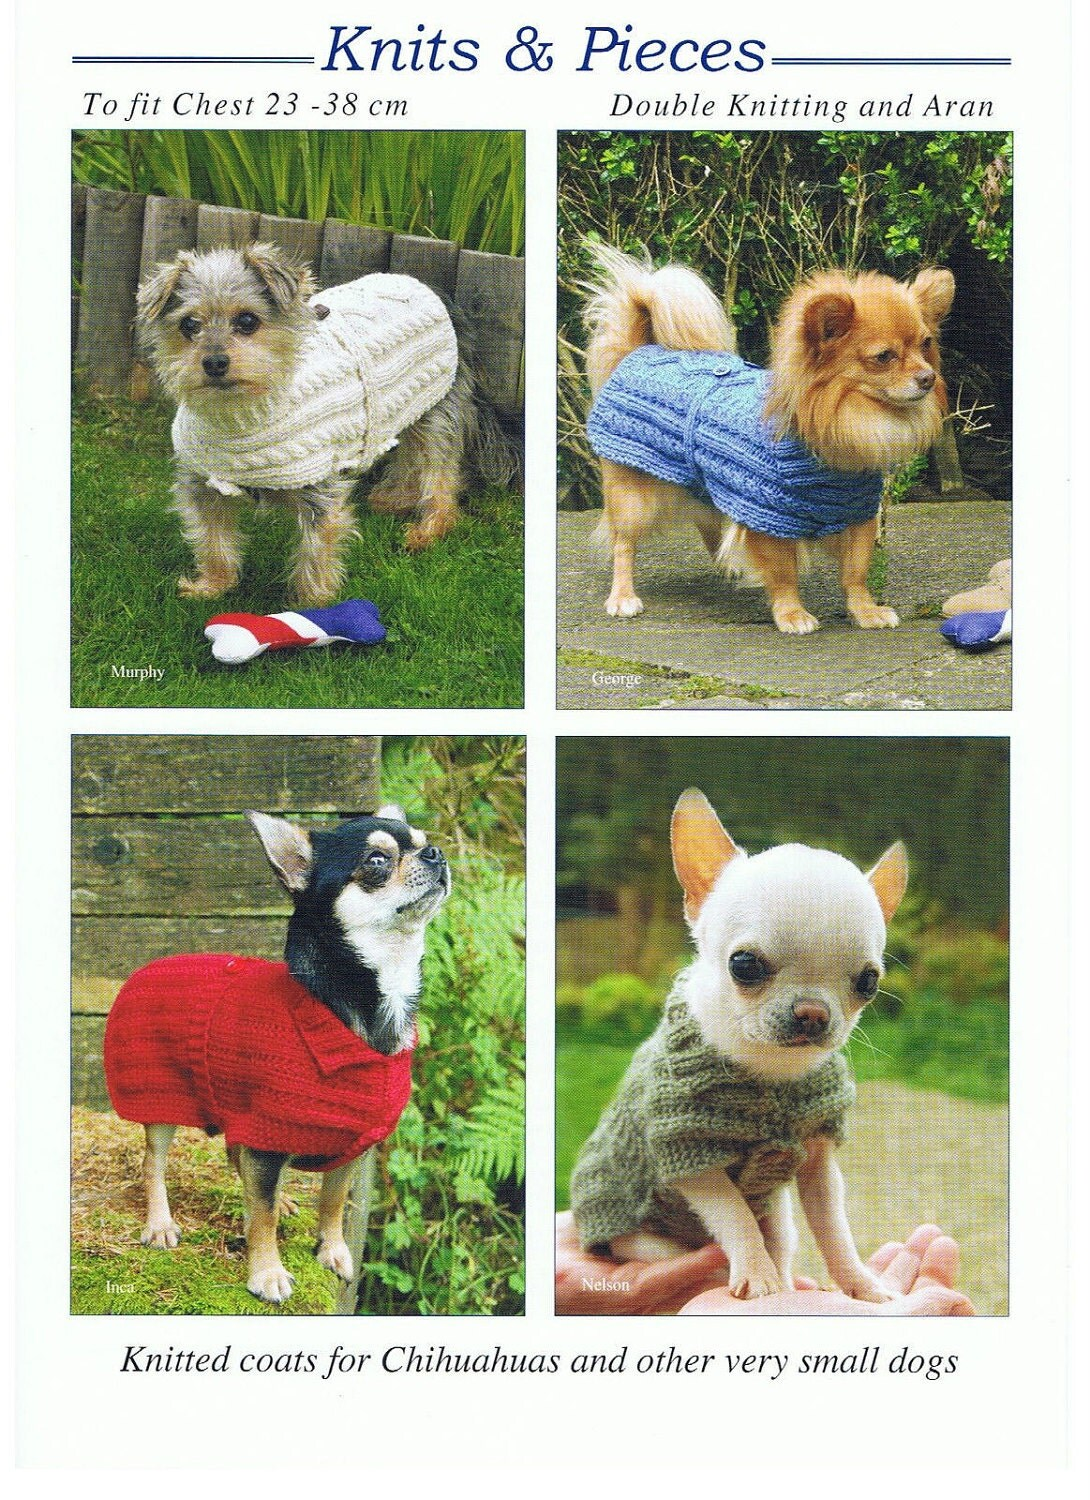 Dog Coat Knitting Pattern Uk : Knitting pattern for dog coat sweater very small